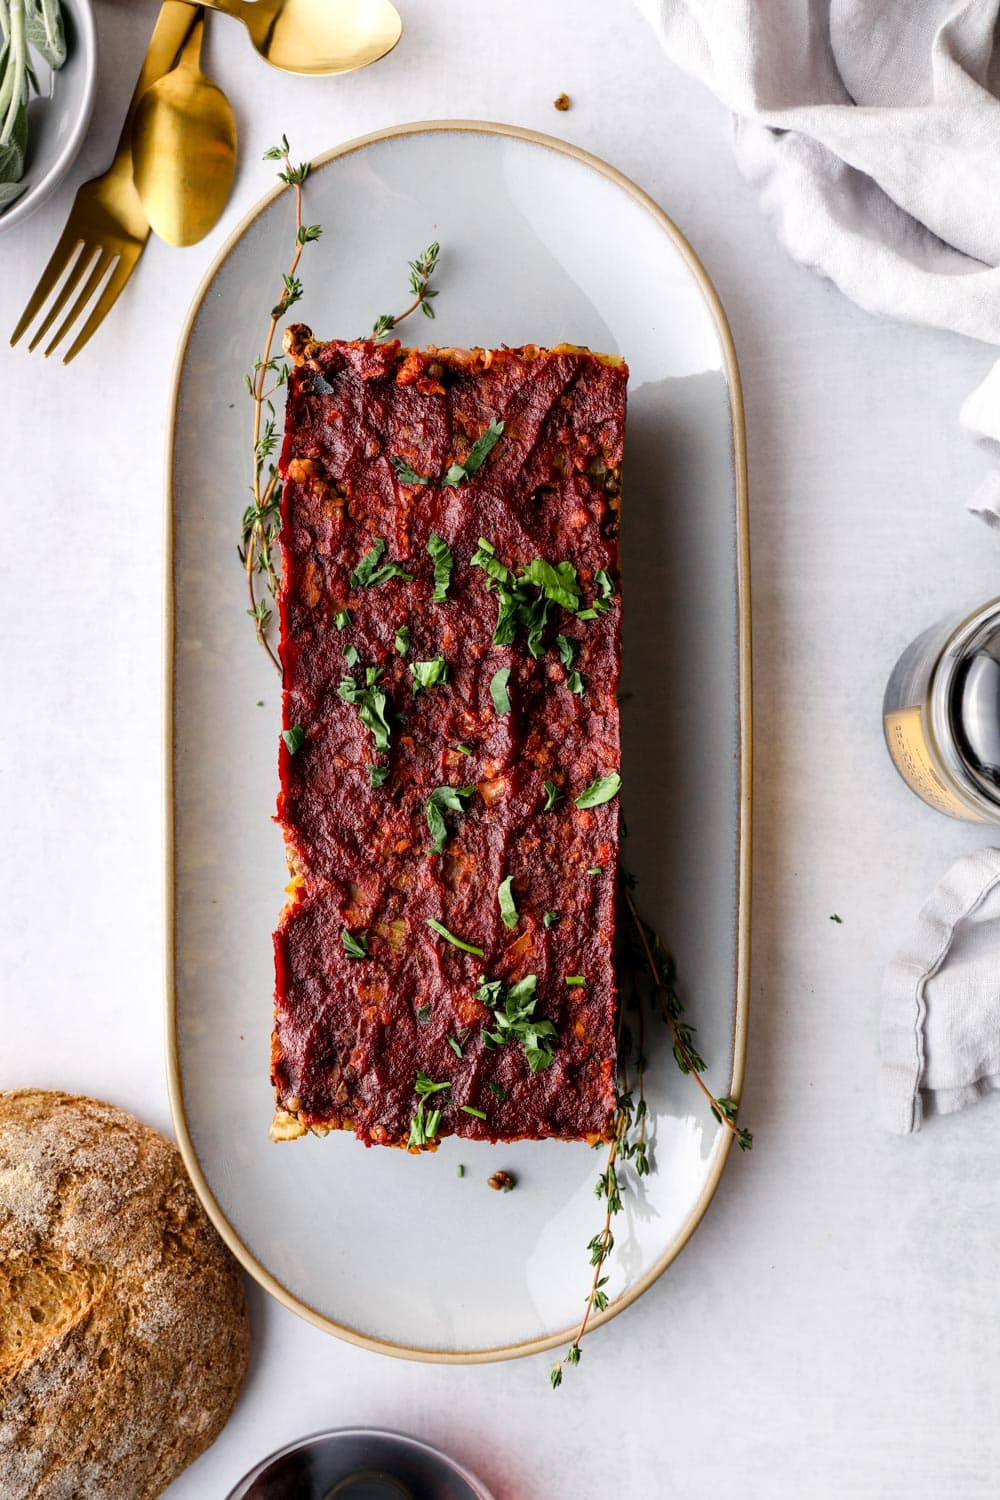 Butternut Squash Lentil Loaf on a serving plate with herbs.